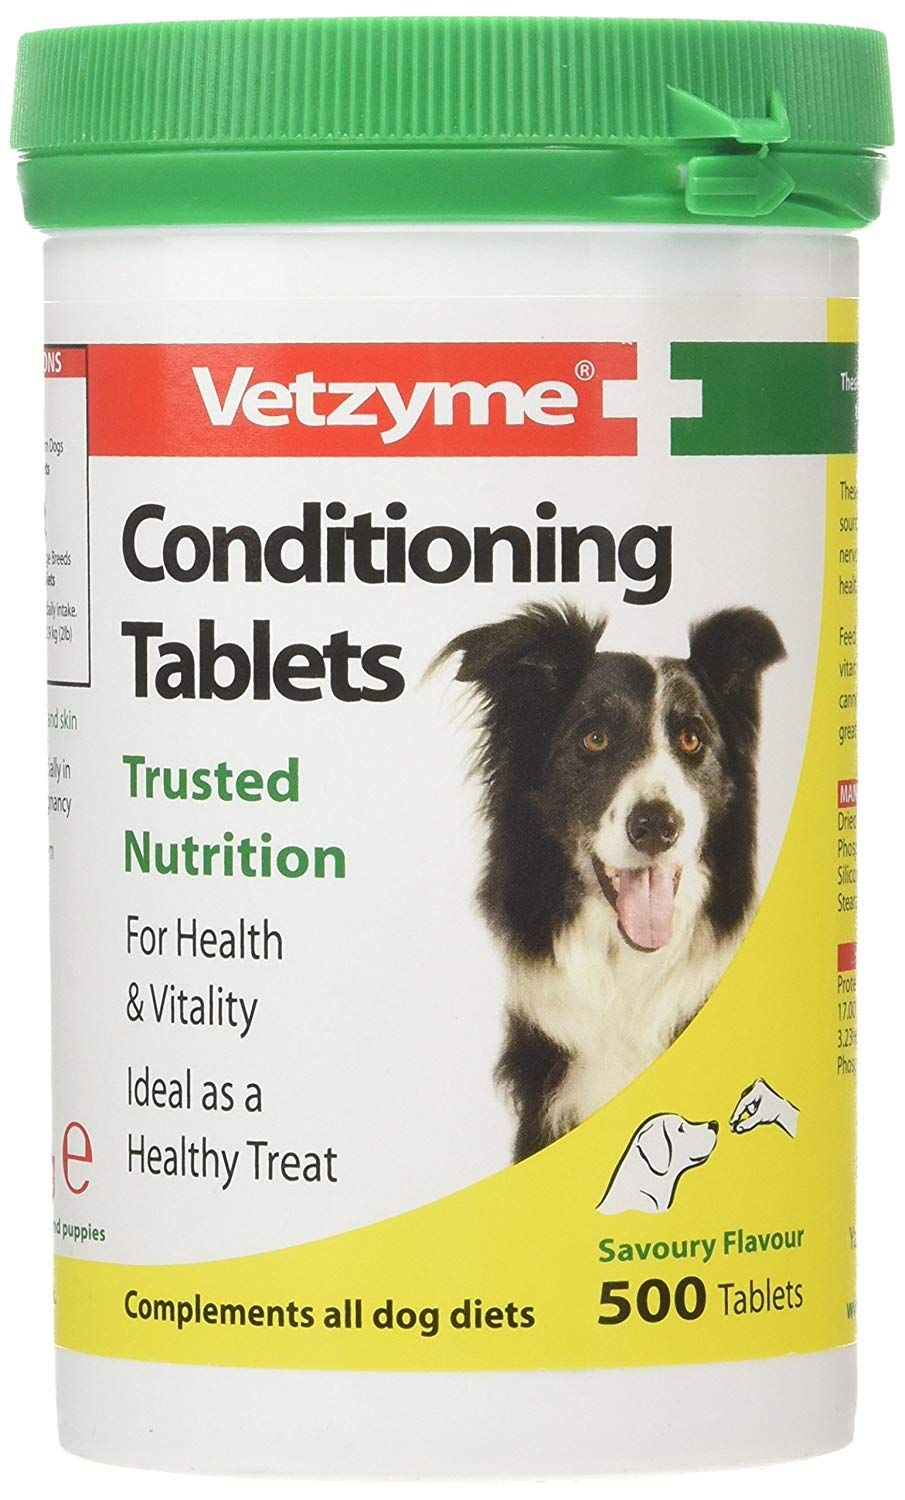 Vetzyme Conditioning Tablets 500 Tablets Thank You For Having